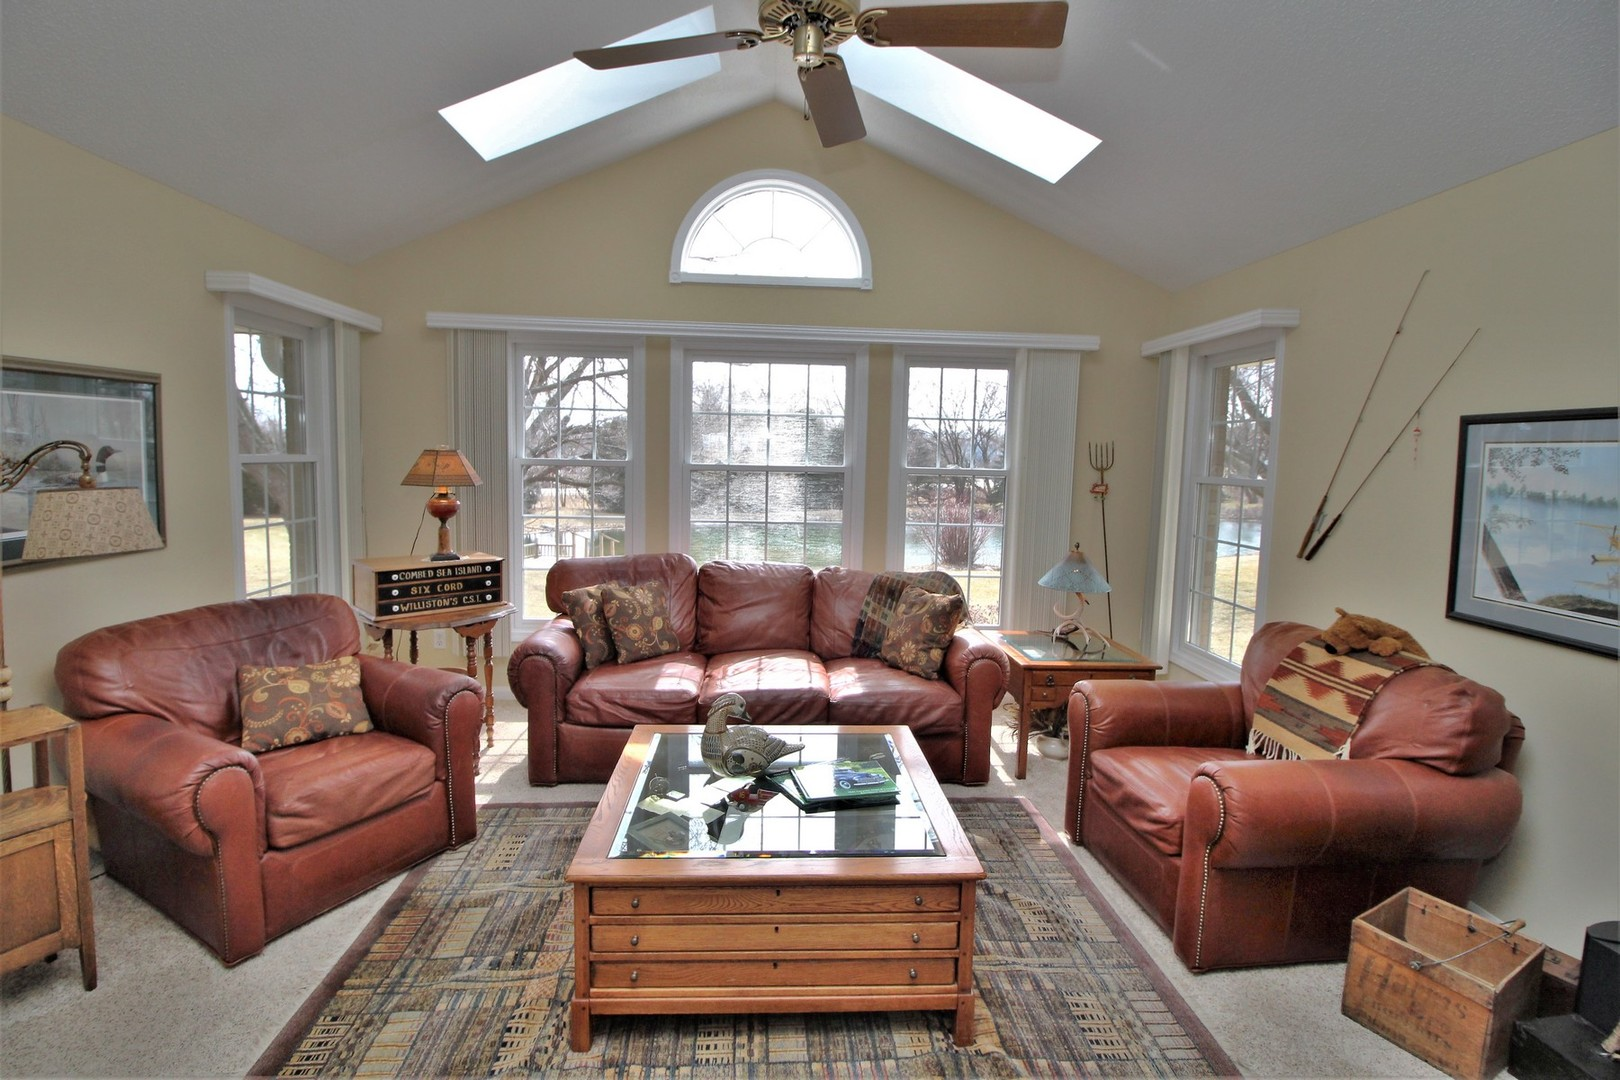 sharon grove single men Sharon grove homes for sale  homes for sale  by analyzing information on thousands of single family homes for sale in 42280,  42280 real estate facts.